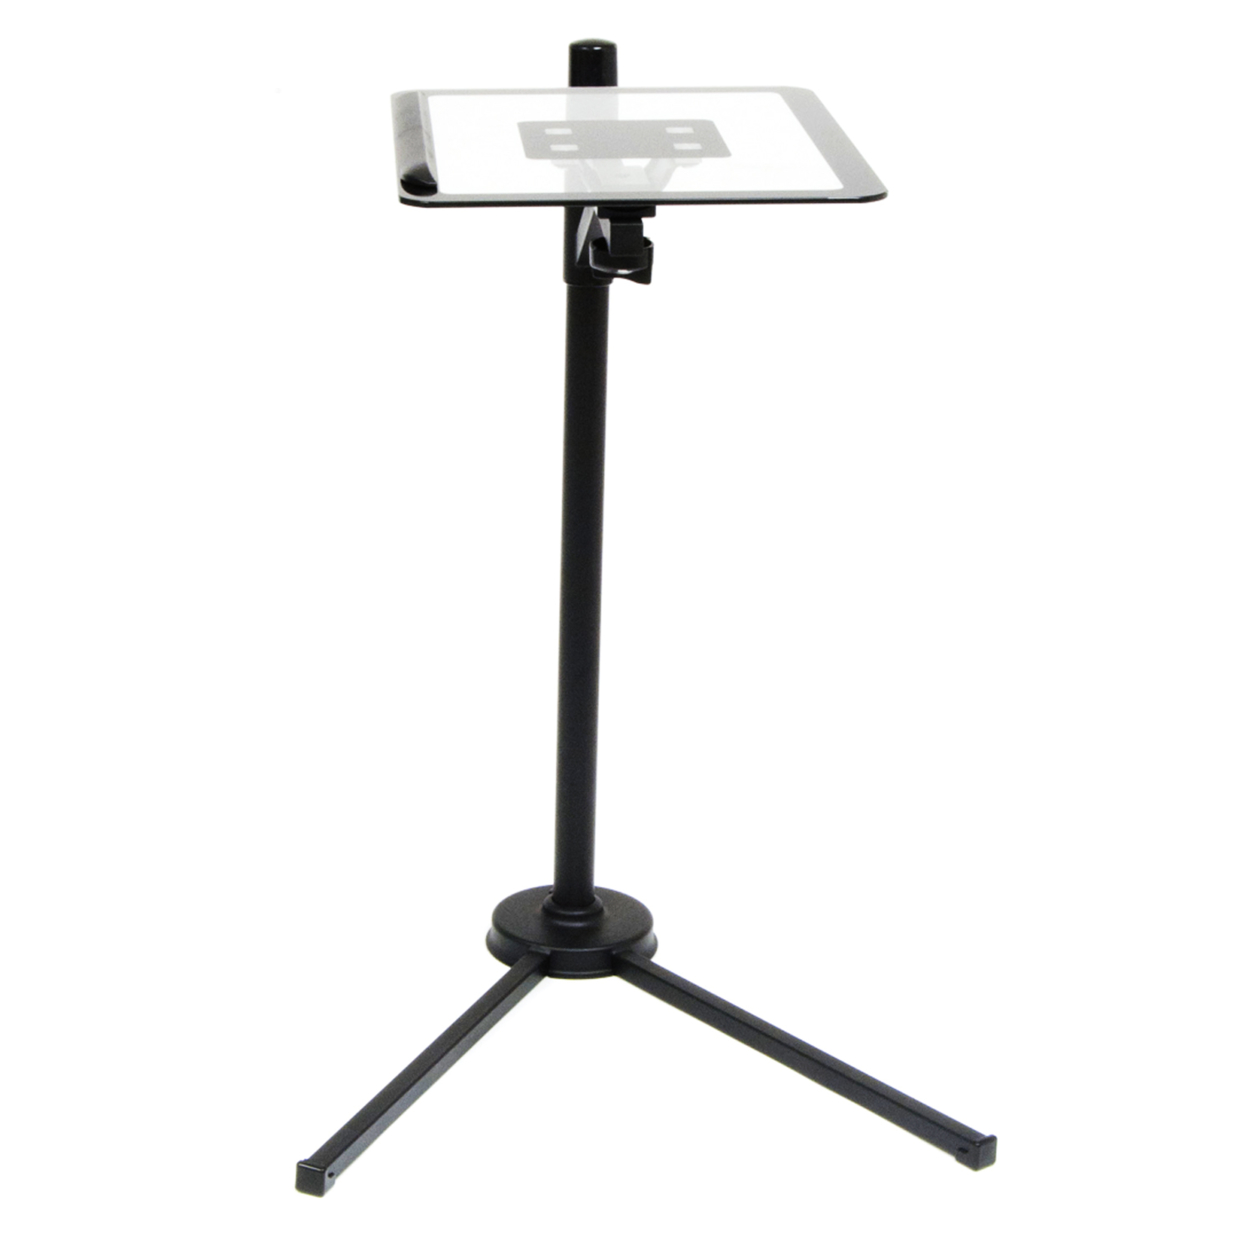 Offex Home Office Calico Tech Stand - Black/Clear Glass